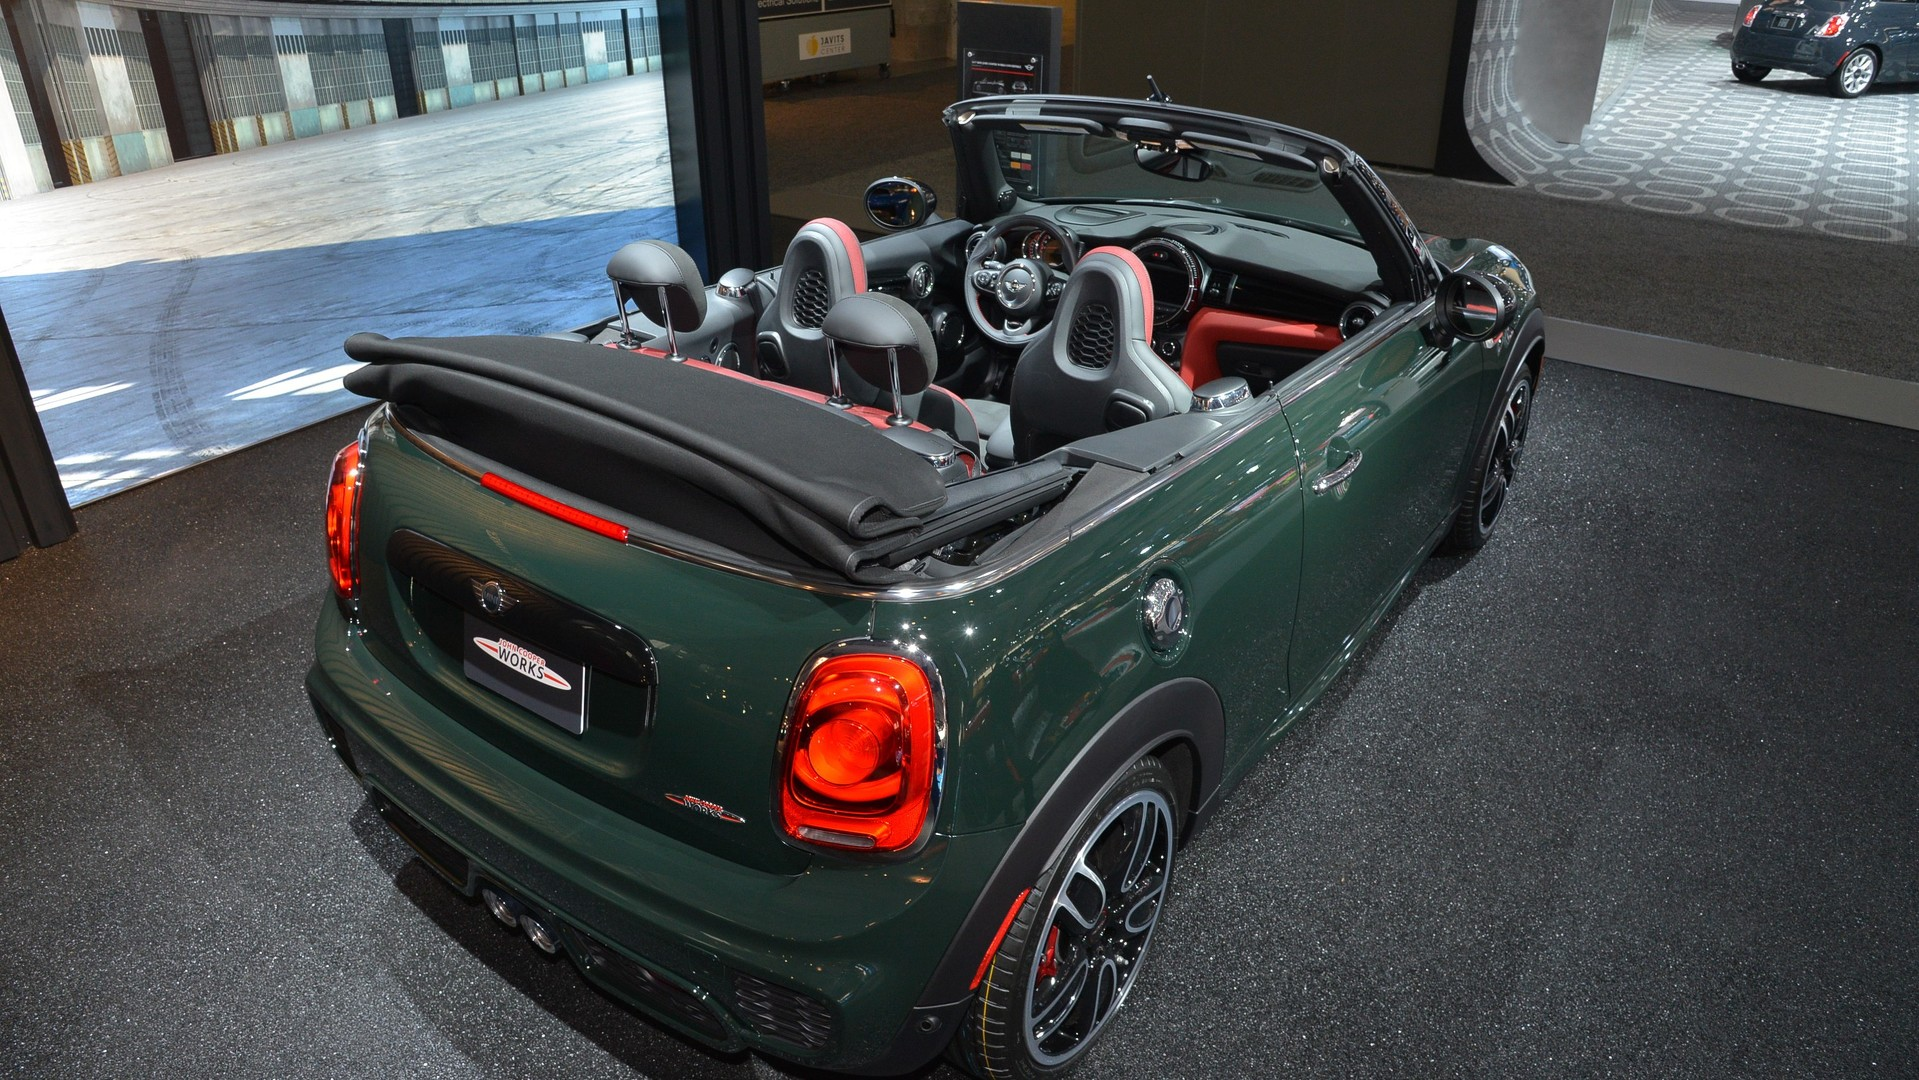 mini john cooper works convertible makes public debut in new york mini. Black Bedroom Furniture Sets. Home Design Ideas